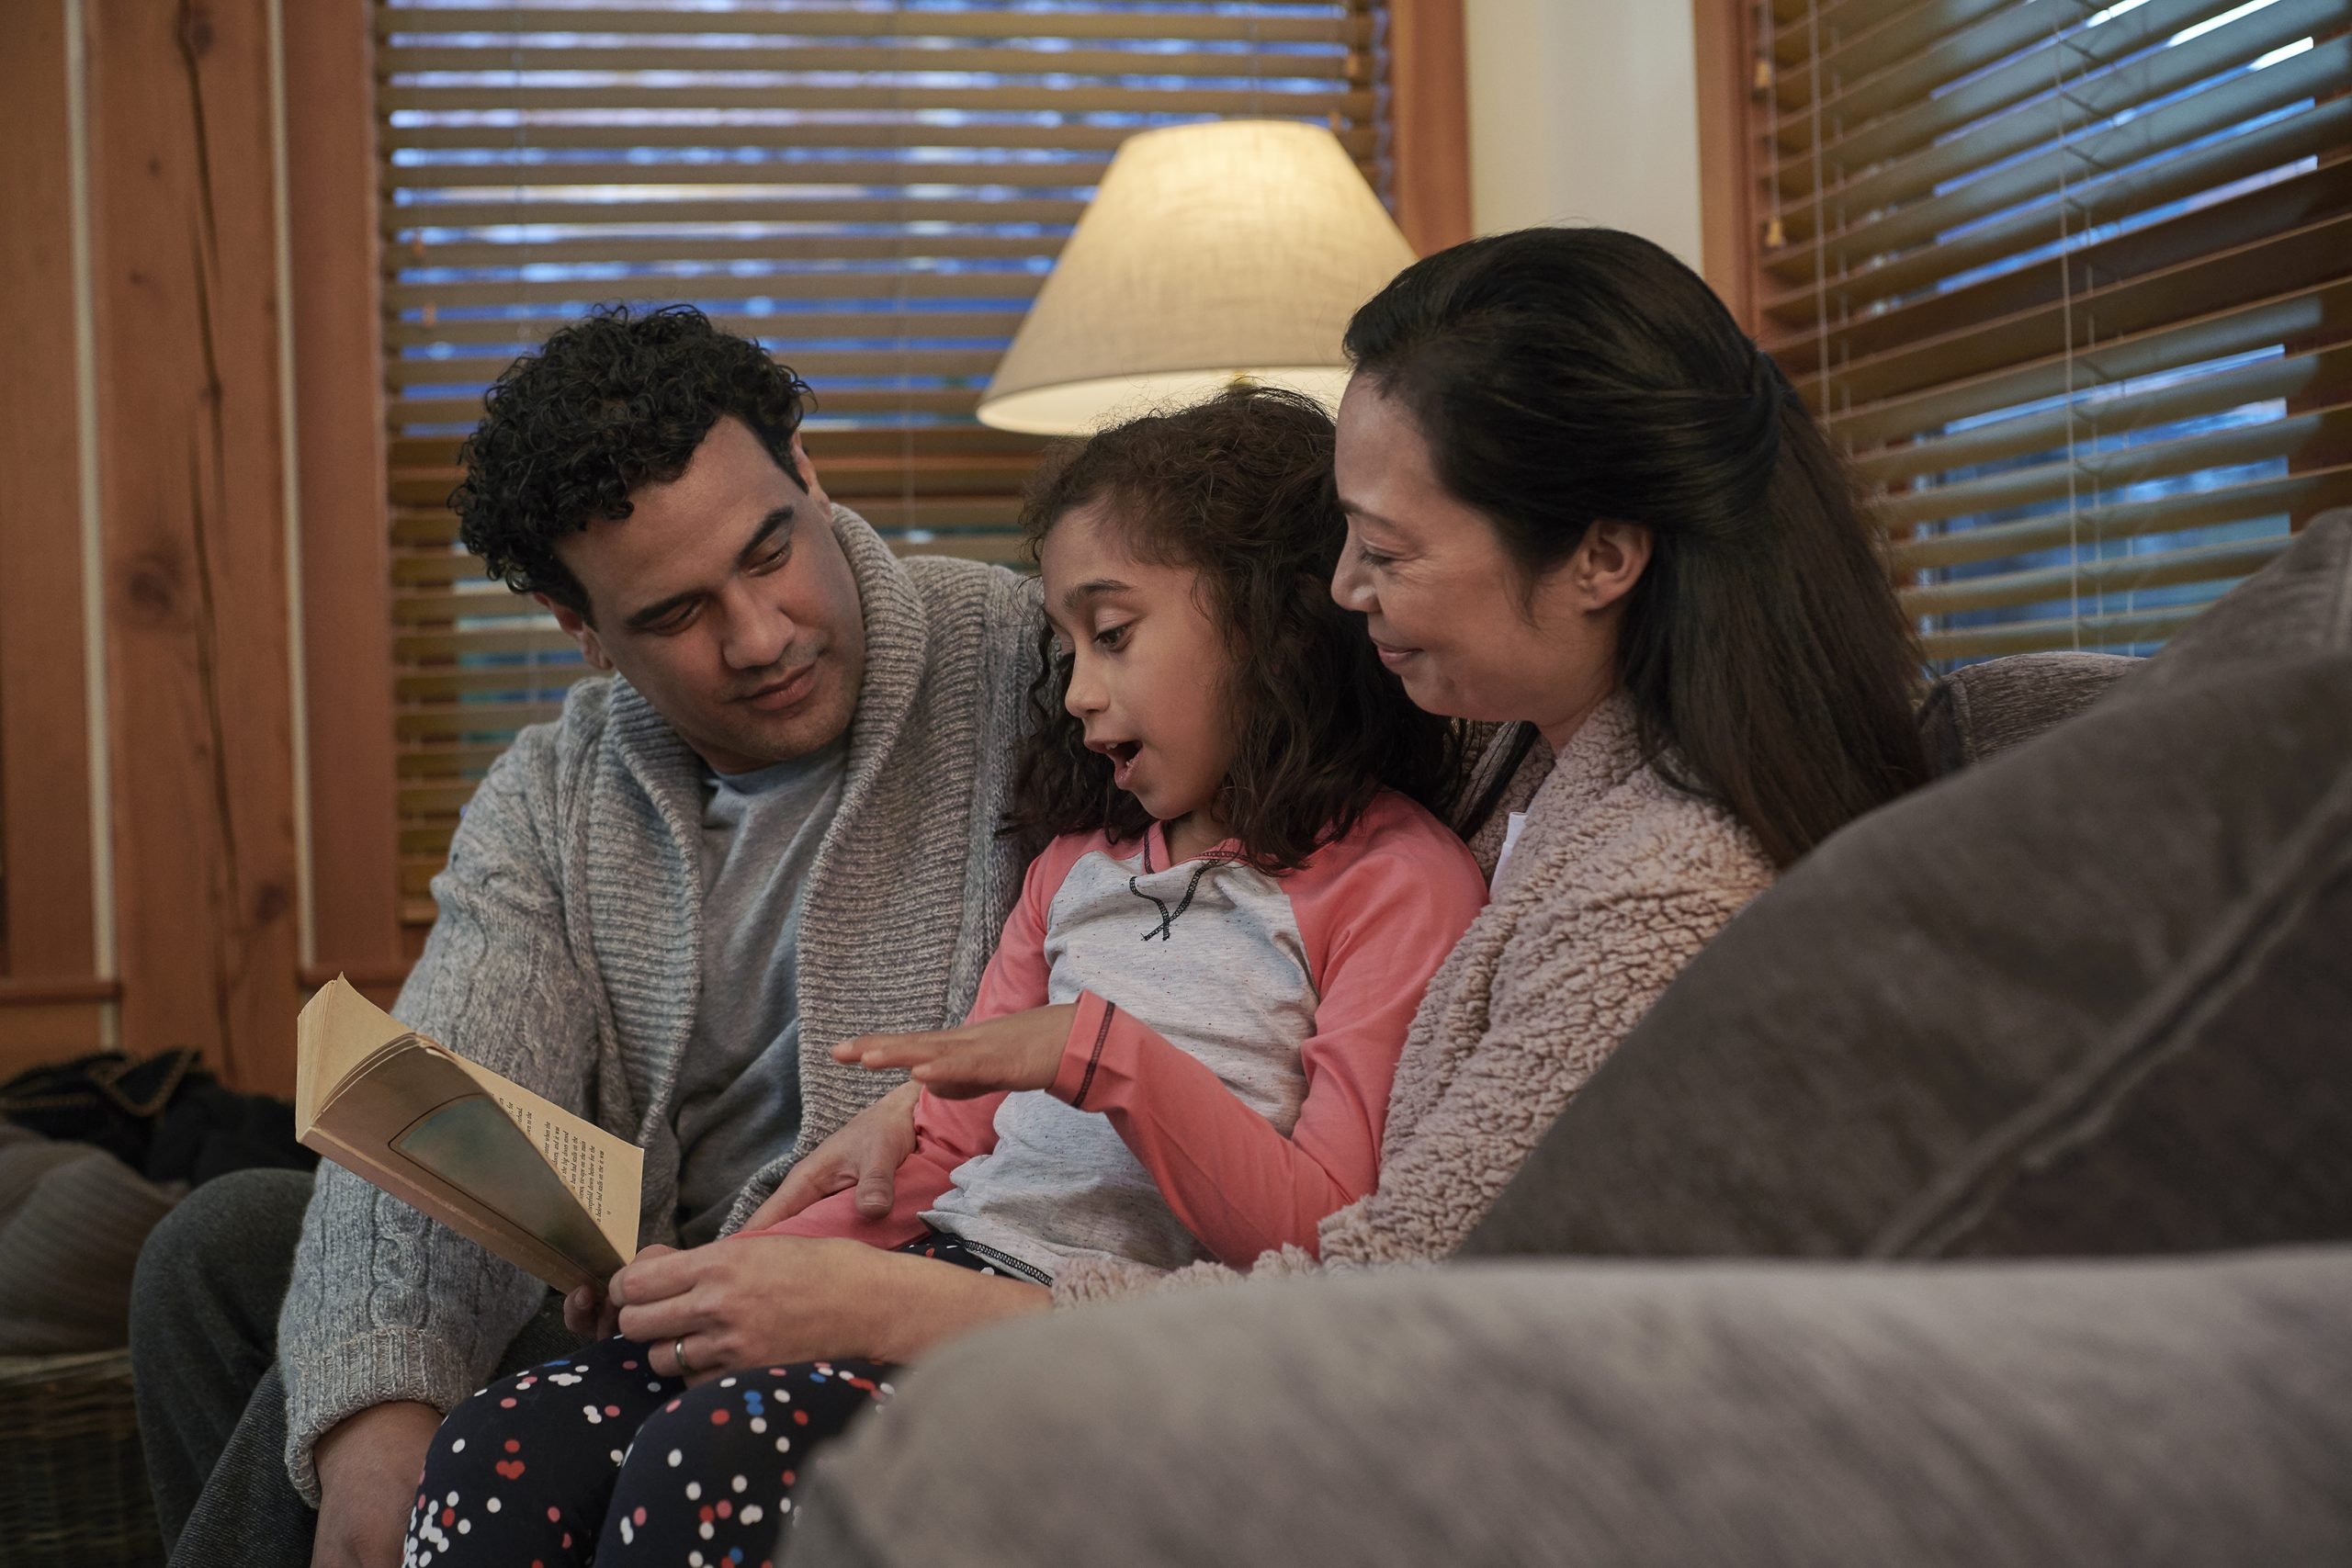 A family of three reading a book on a couch